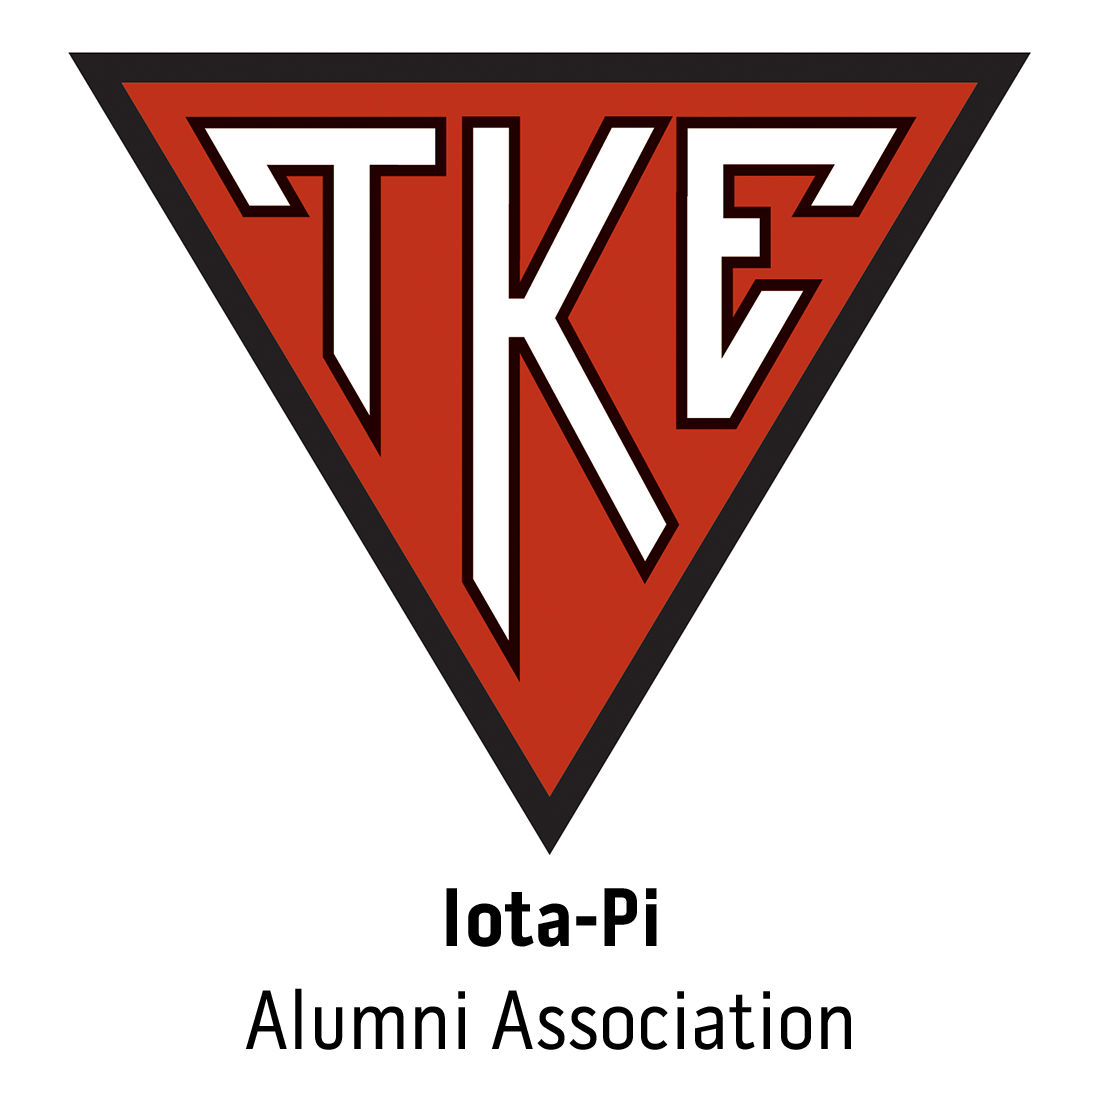 Iota-Pi Alumni Association at Kent State University